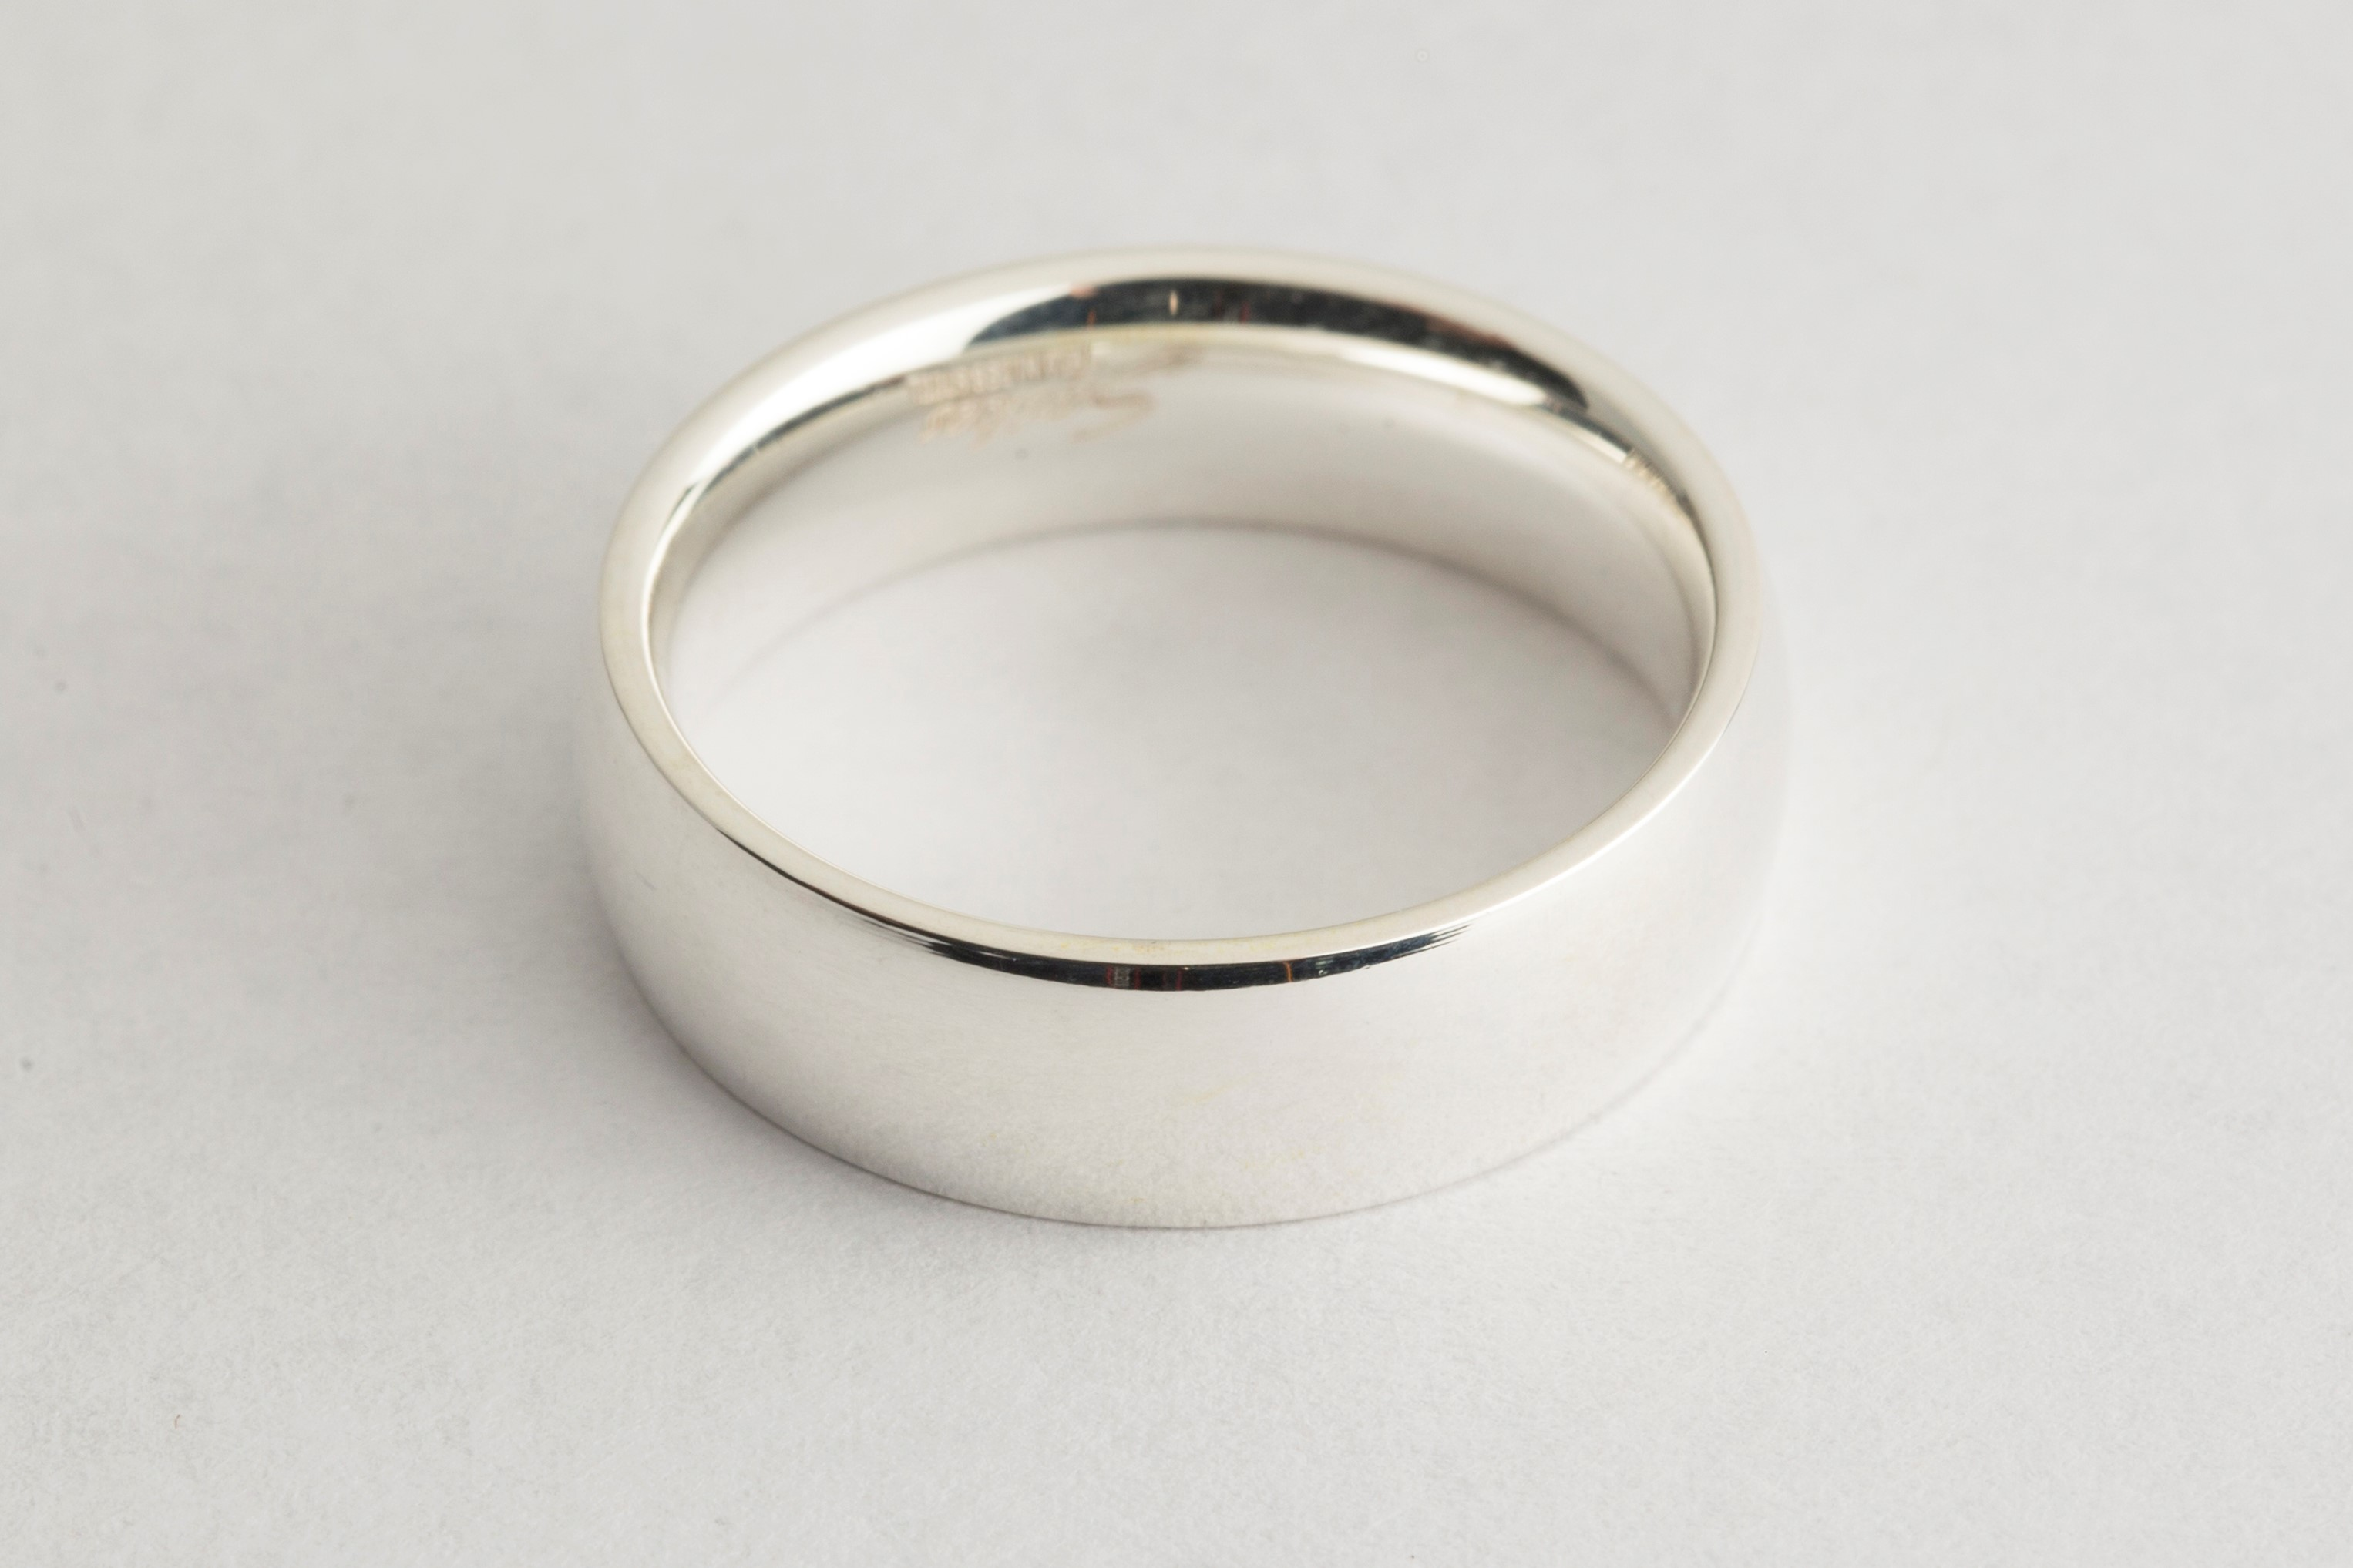 Men's wedding ring electroplated with rhodium solution